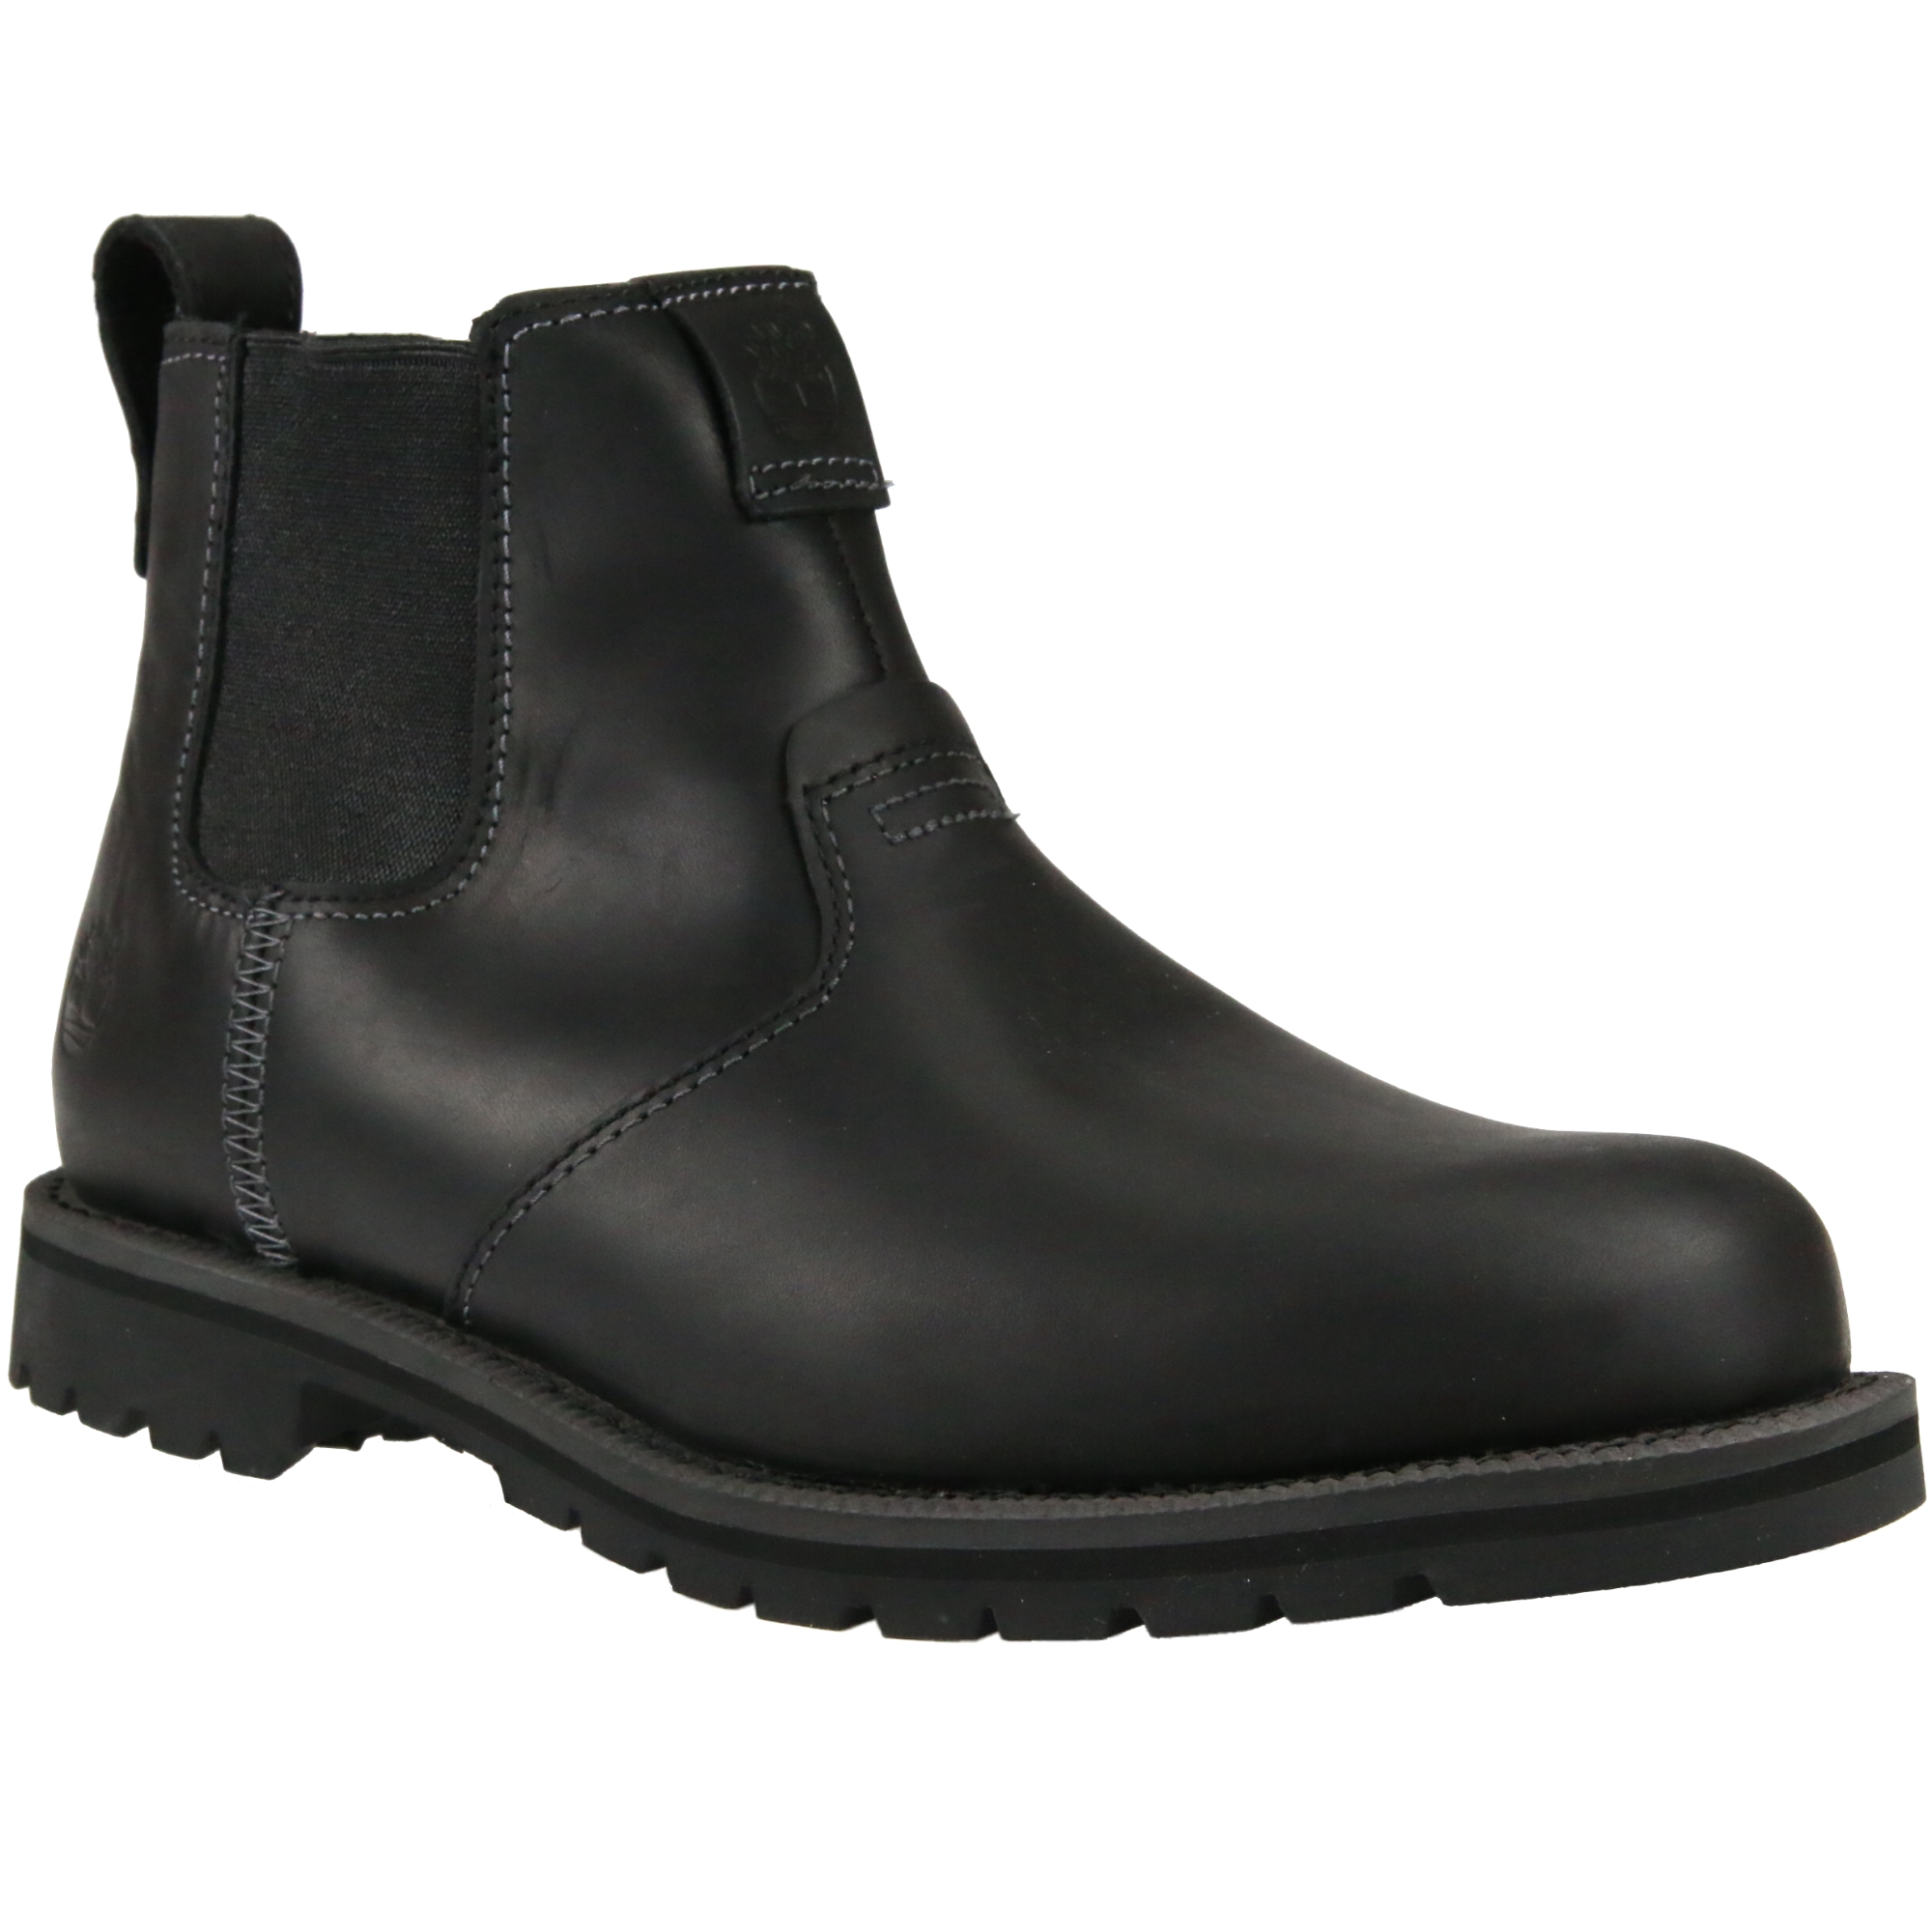 timberland grantly chelsea boots schuhe stiefel echtleder winter herren ebay. Black Bedroom Furniture Sets. Home Design Ideas